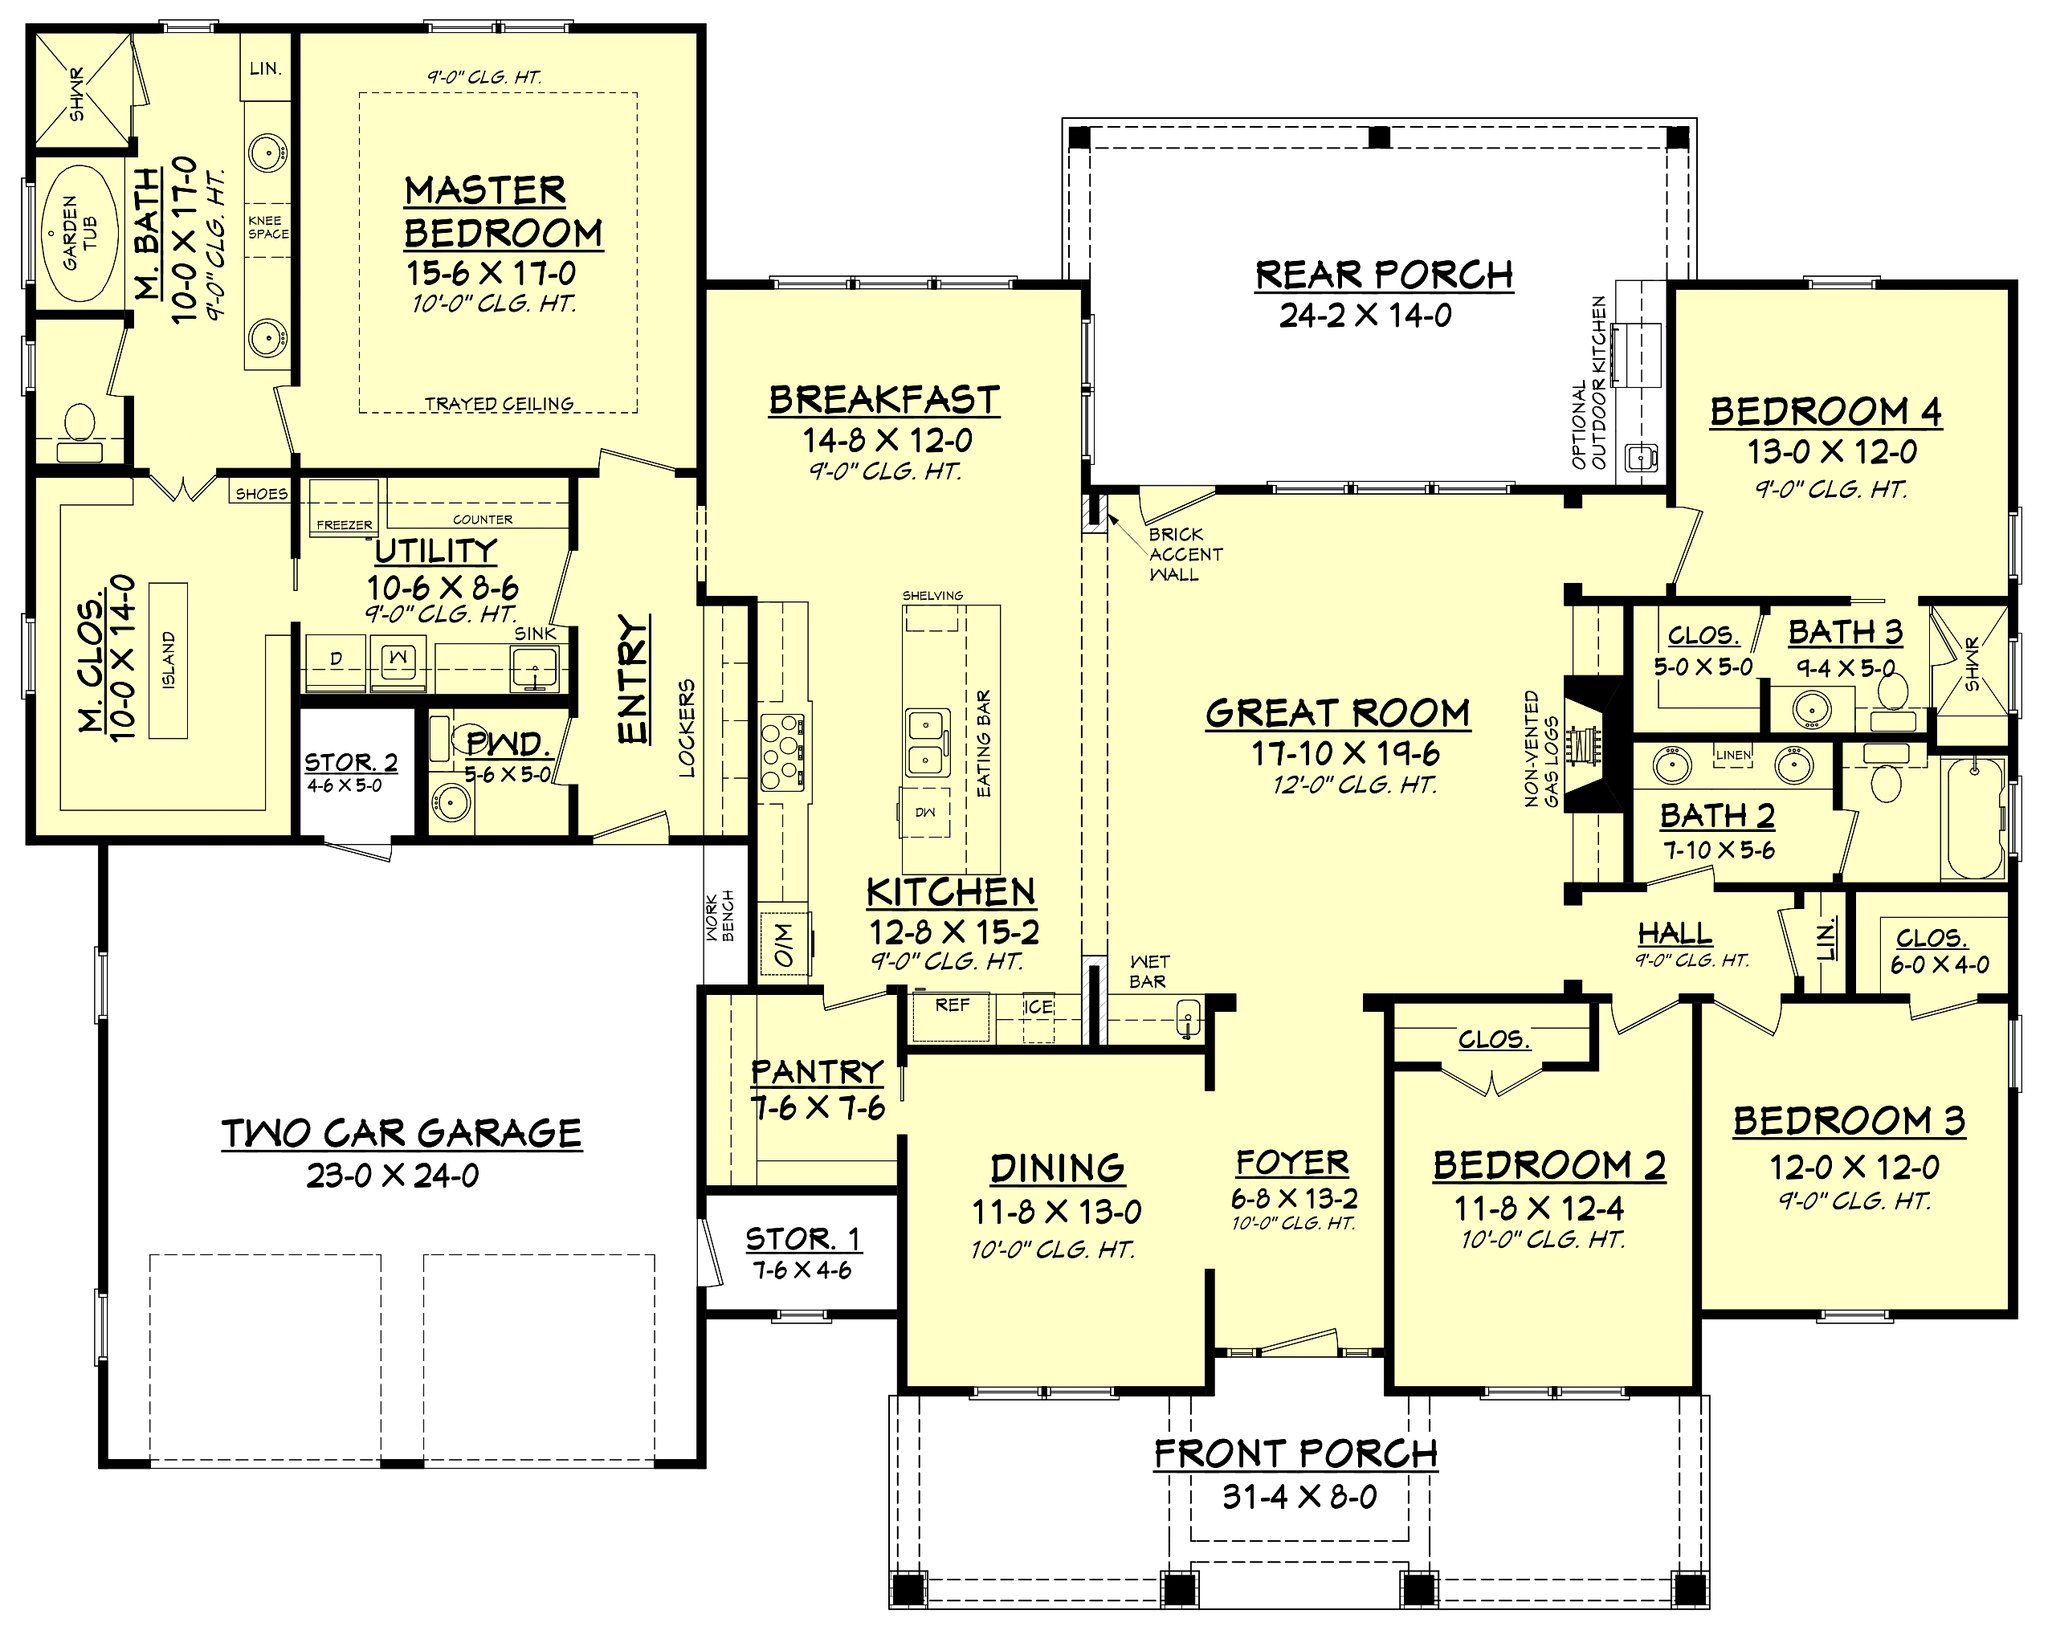 Frontier lane house plan craftsman style houses for Half bath floor plans